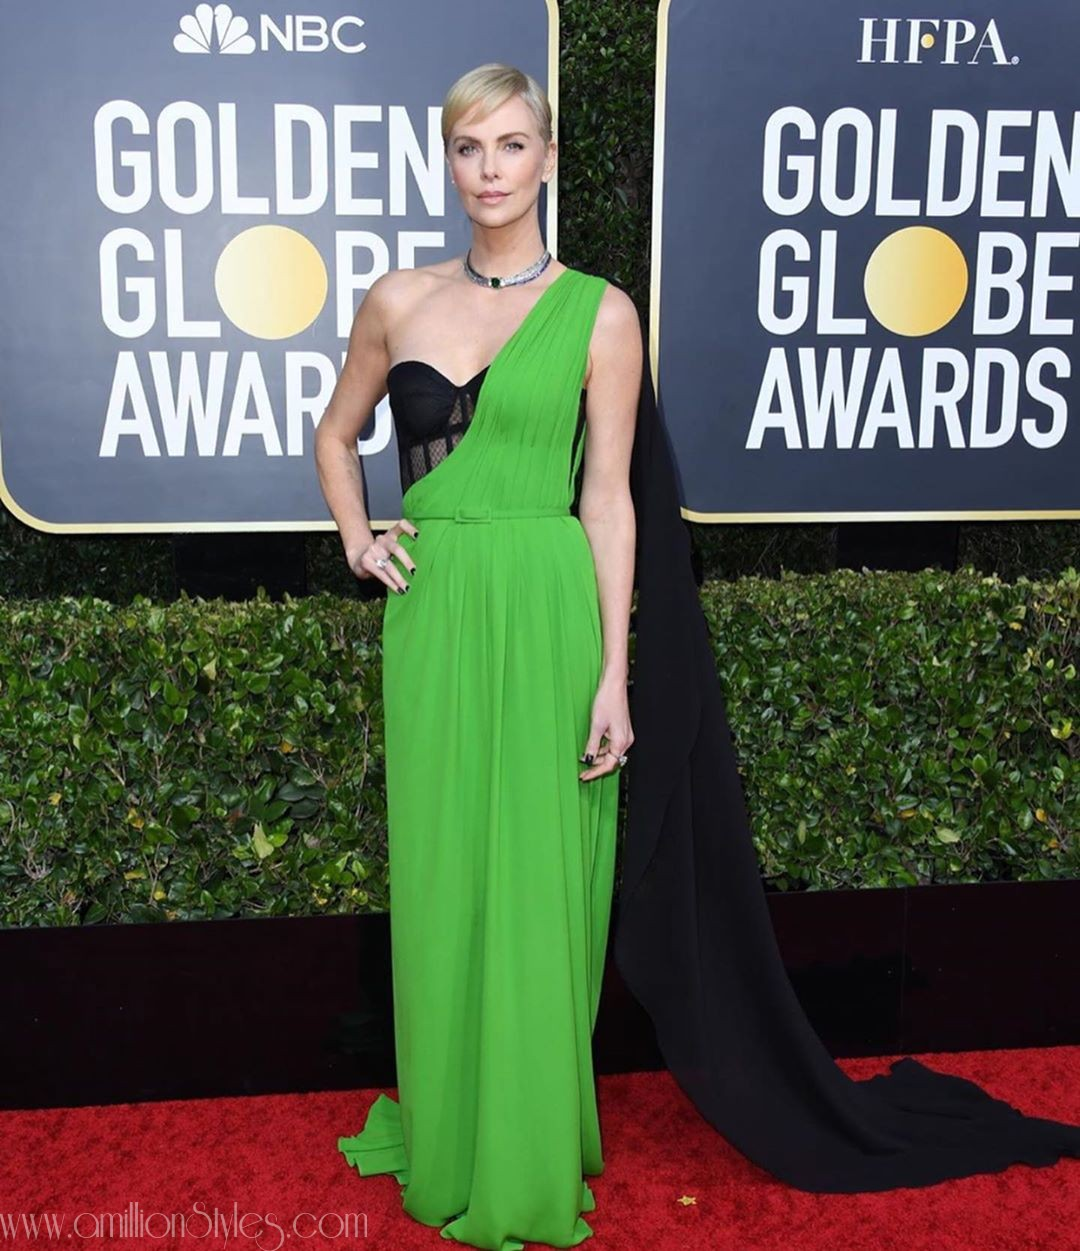 Here Are Our Best Dressed Celebrities At The 2020 Golden Globes Awards